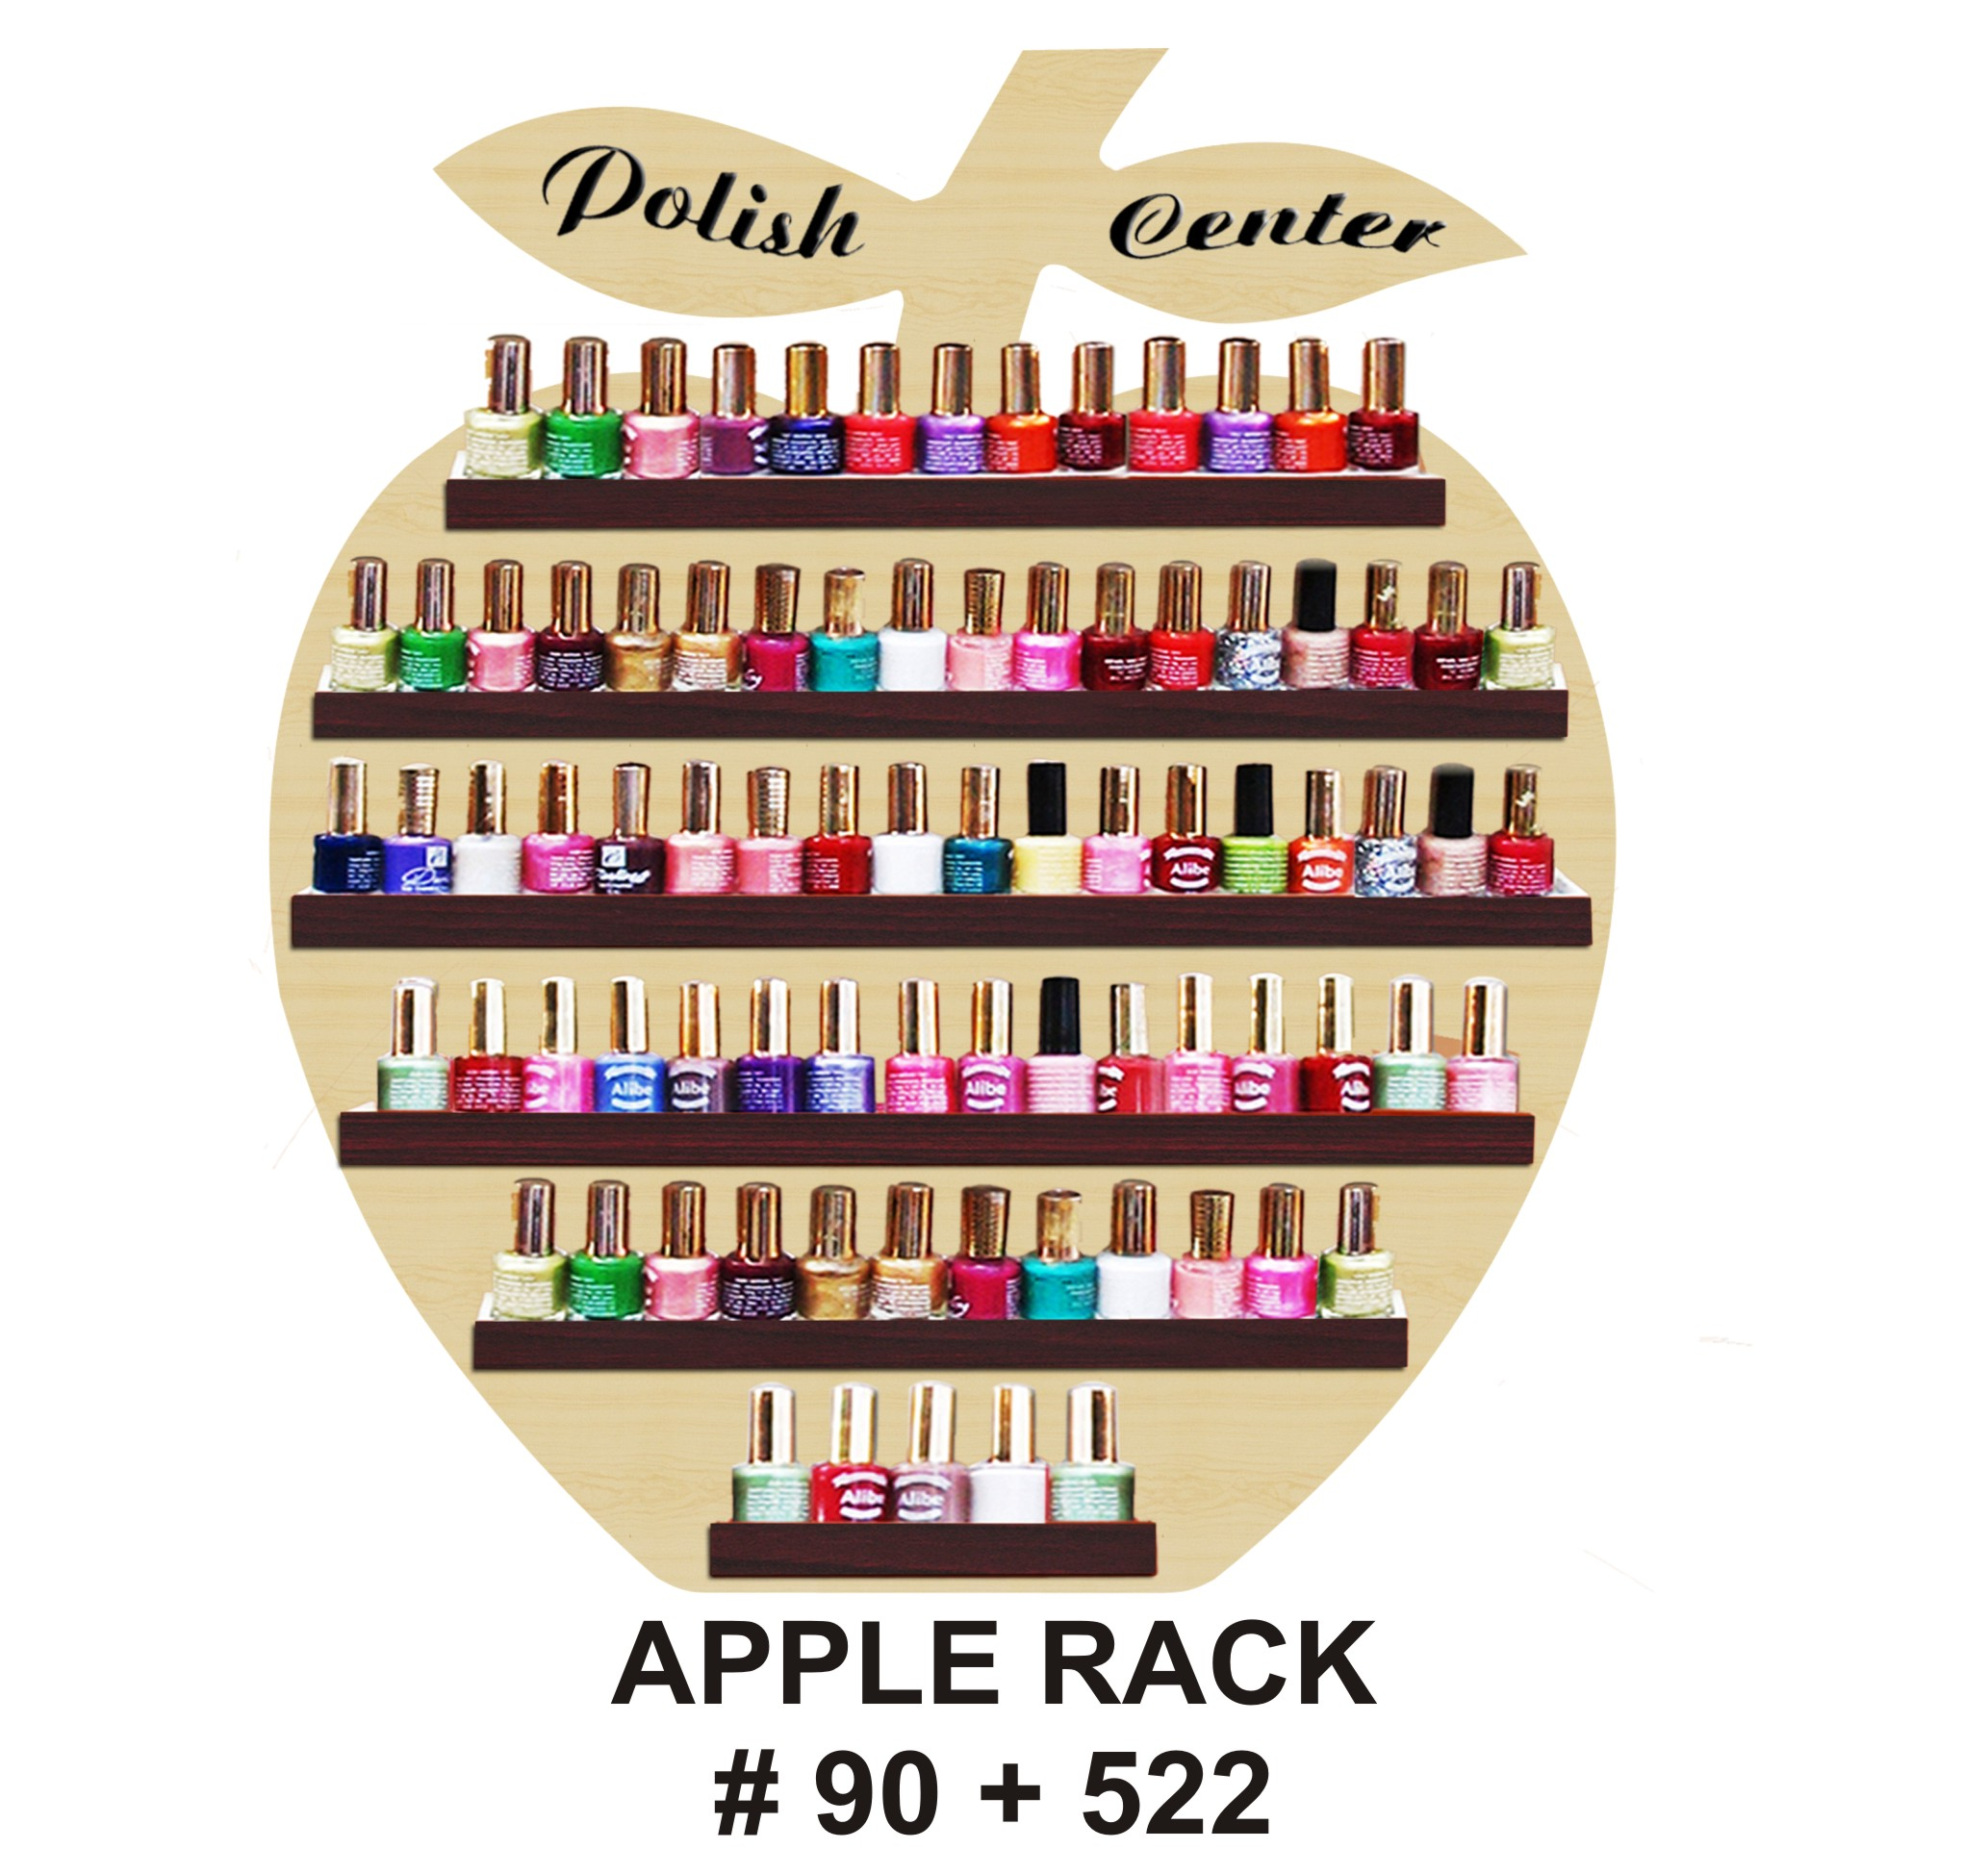 APPLE RACK # 90 + 522